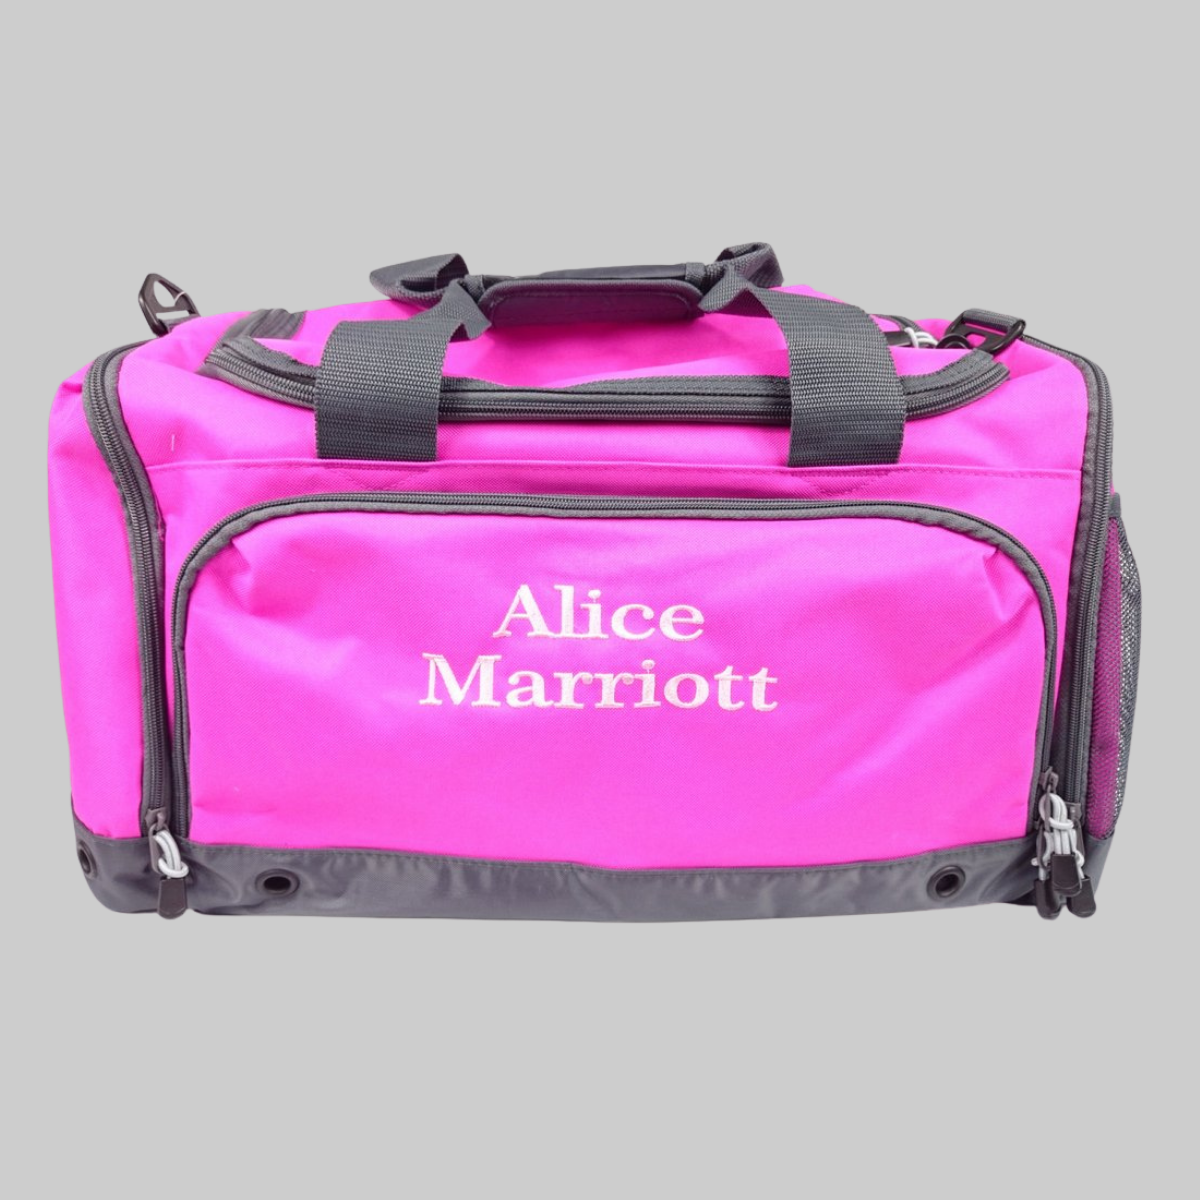 Personalised sports holdall for adults and children. The holdall features compartments to keep wet or mucky kit separate from the rest of your bag's contents. The bag can be personalised with a name of your choice and is avaiable in red, black, royal blue, lime, orange and fuschia pink.